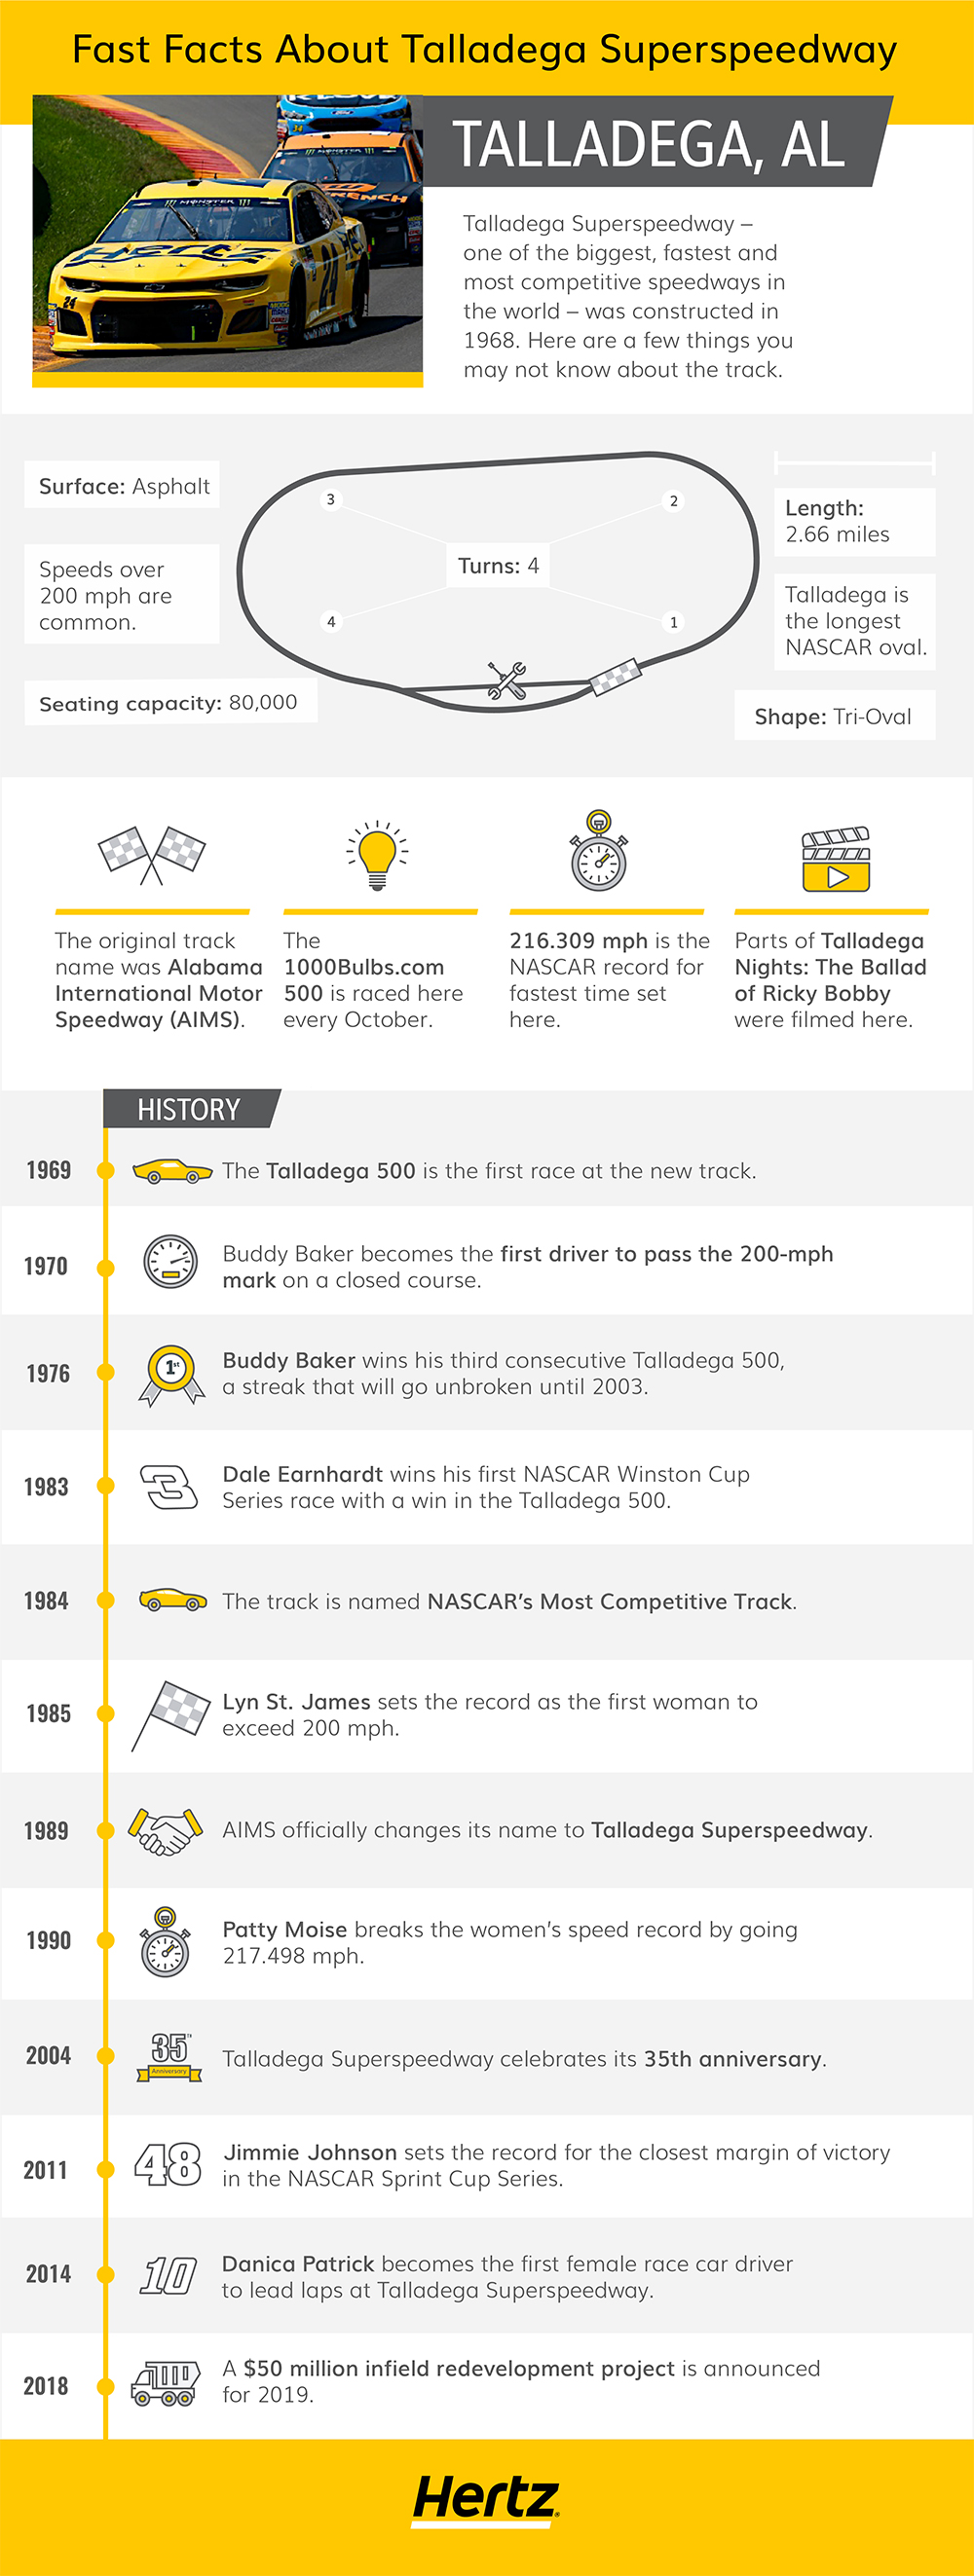 Talladega Superspeedway infographic featuring various statistics about the history and logistics of this racetrack